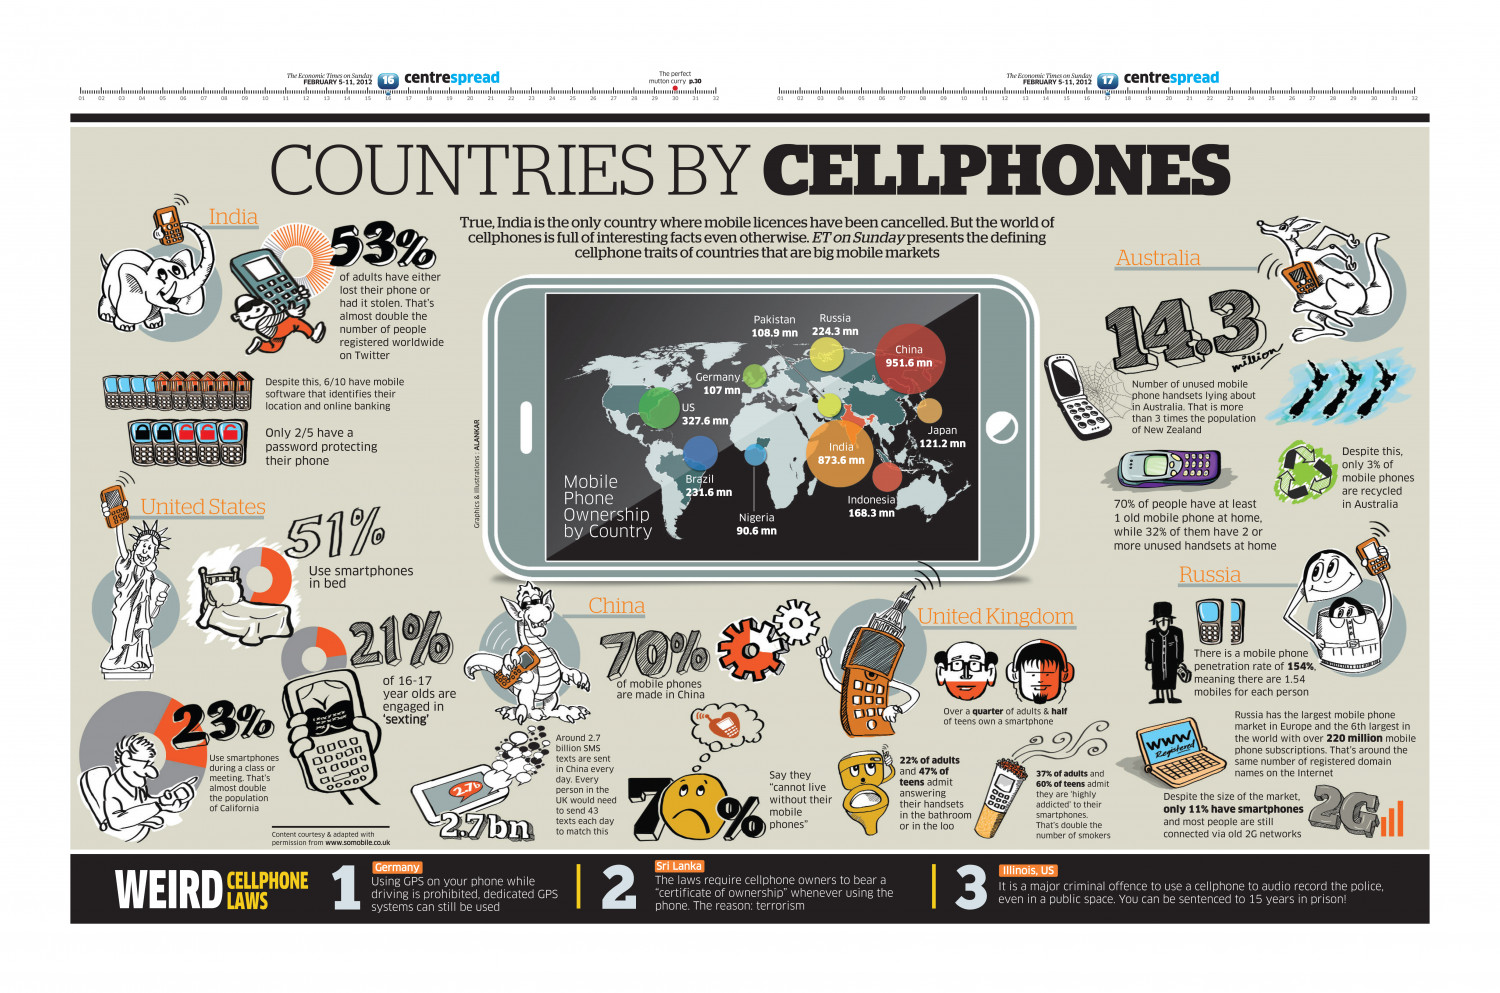 Coun tries by Cellphones Infographic